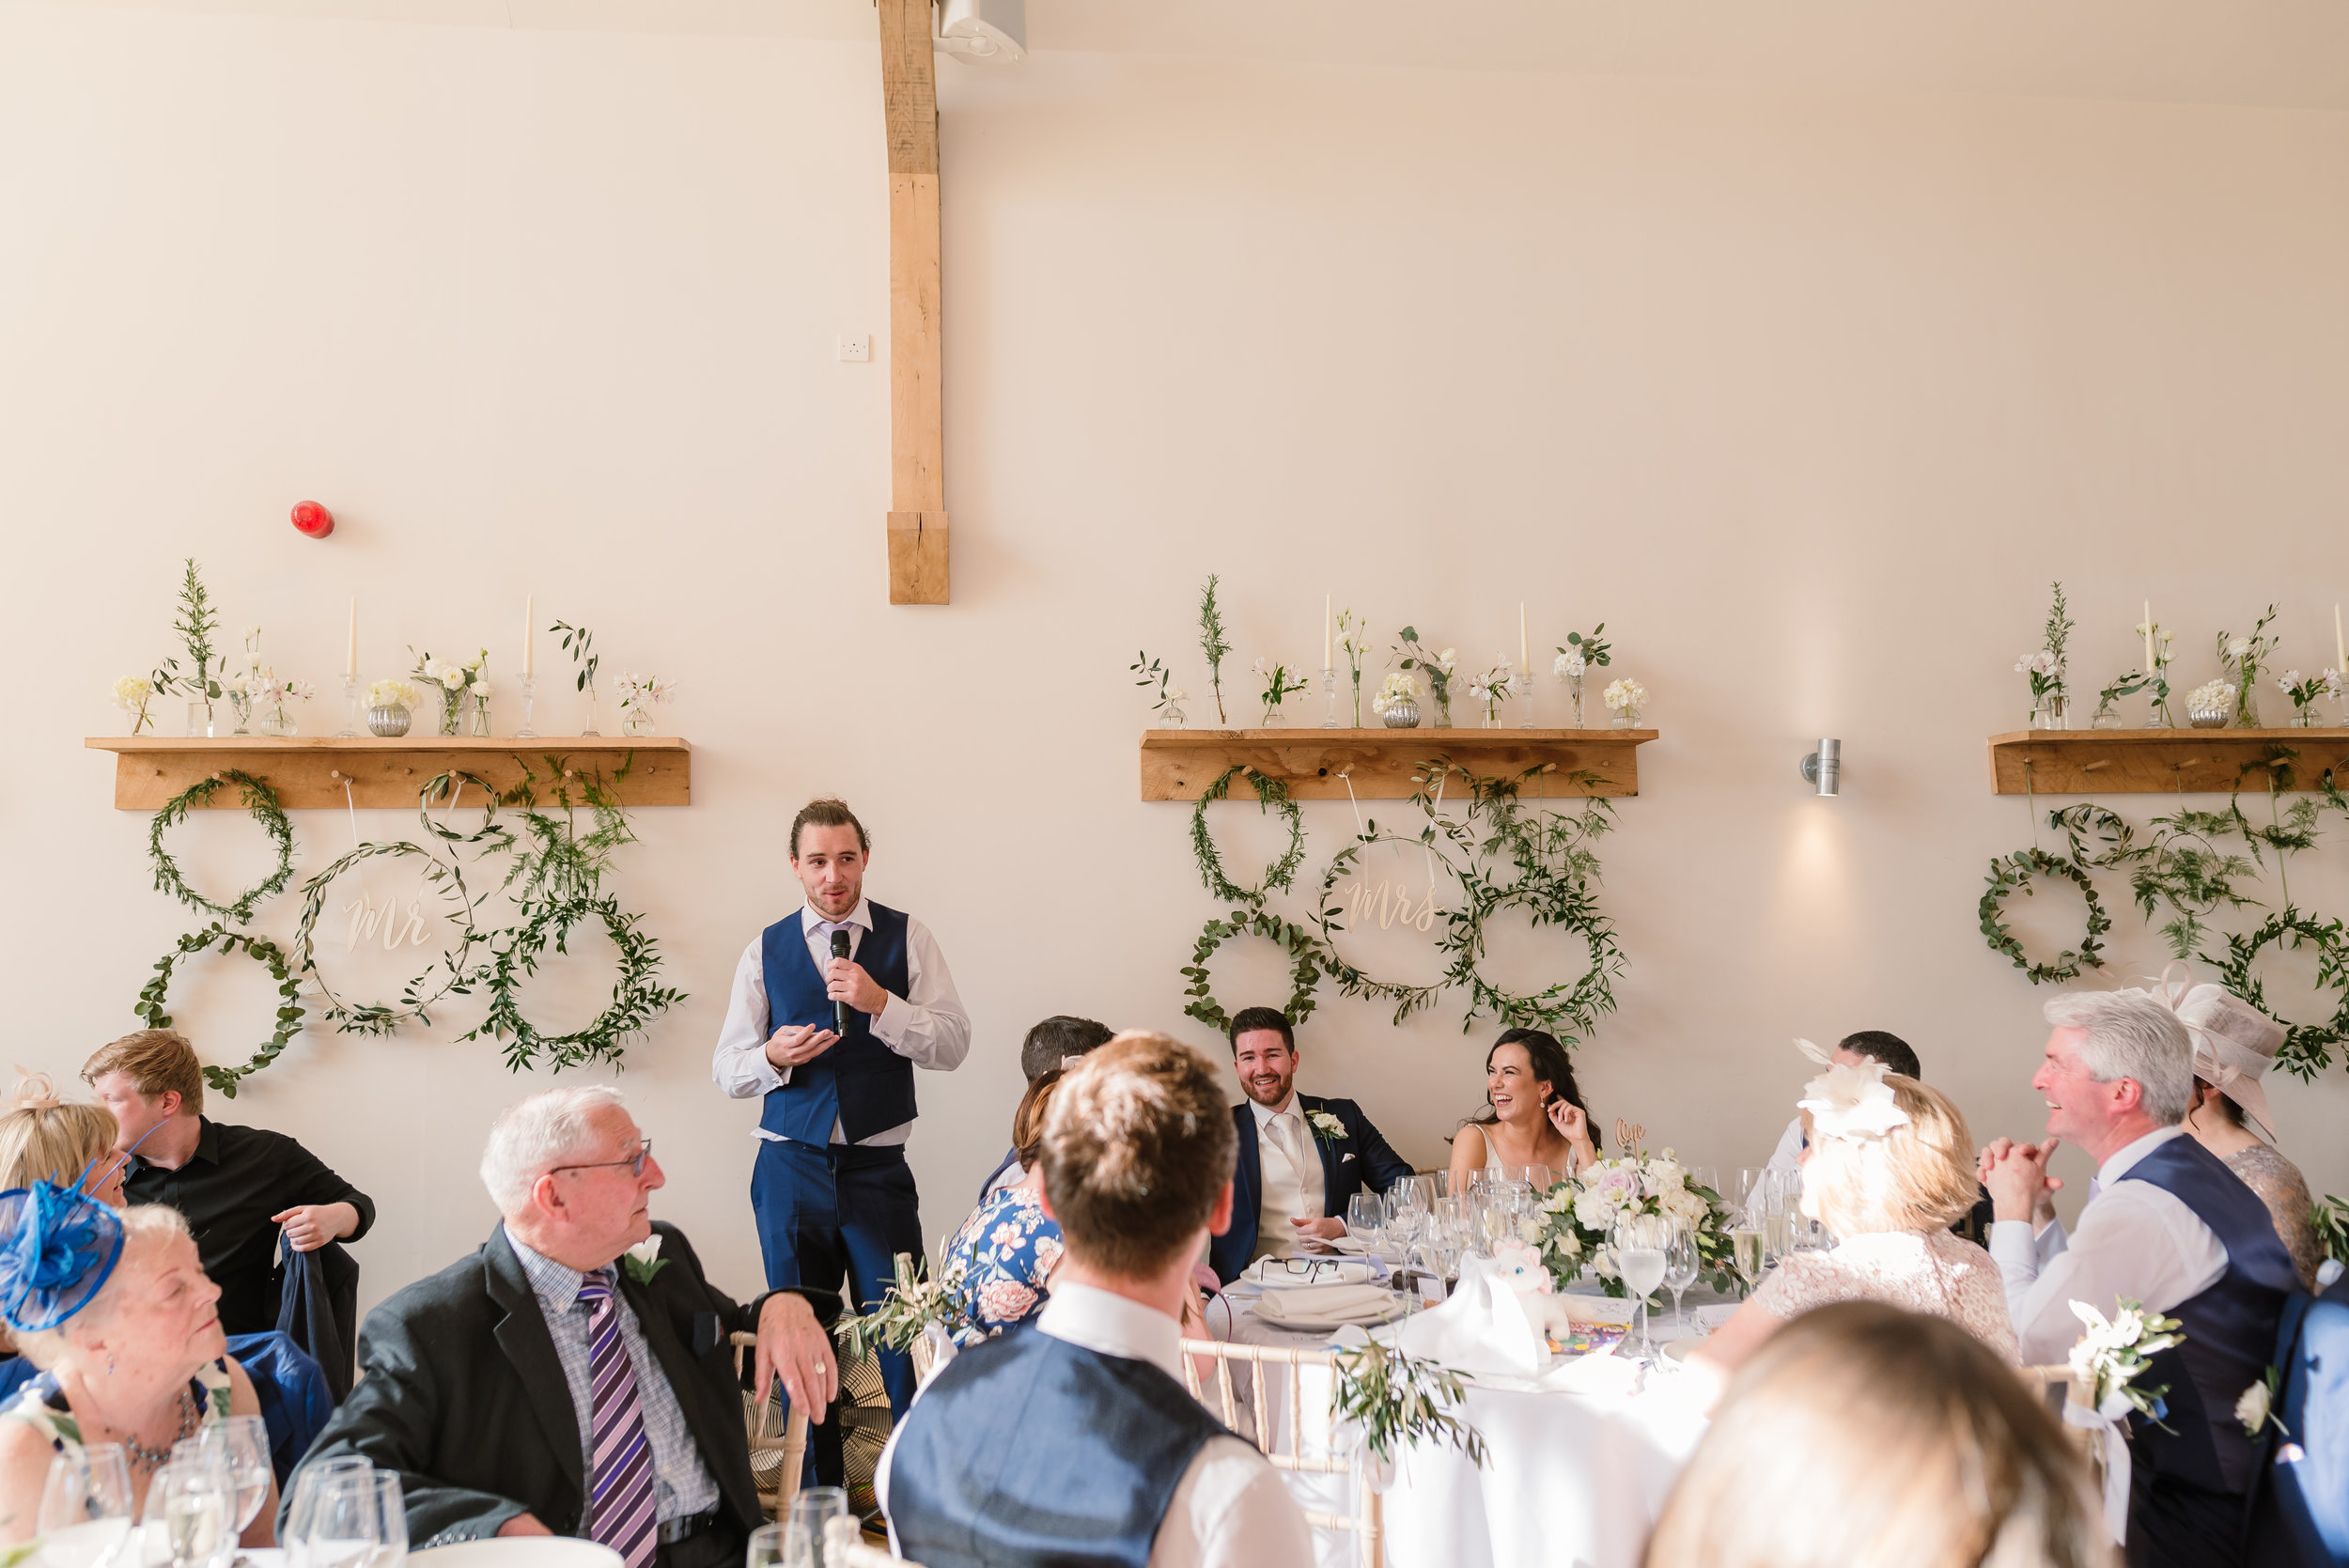 Sarah-Fishlock-Photography : Hampshire-wedding-photographer-hampshire : fleet-wedding-photographer-fleet : Millbridge-Court-Wedding-Photographer : Millbridge-Court-Wedding-Venue : Surrey-wedding-venue-1121.jpg